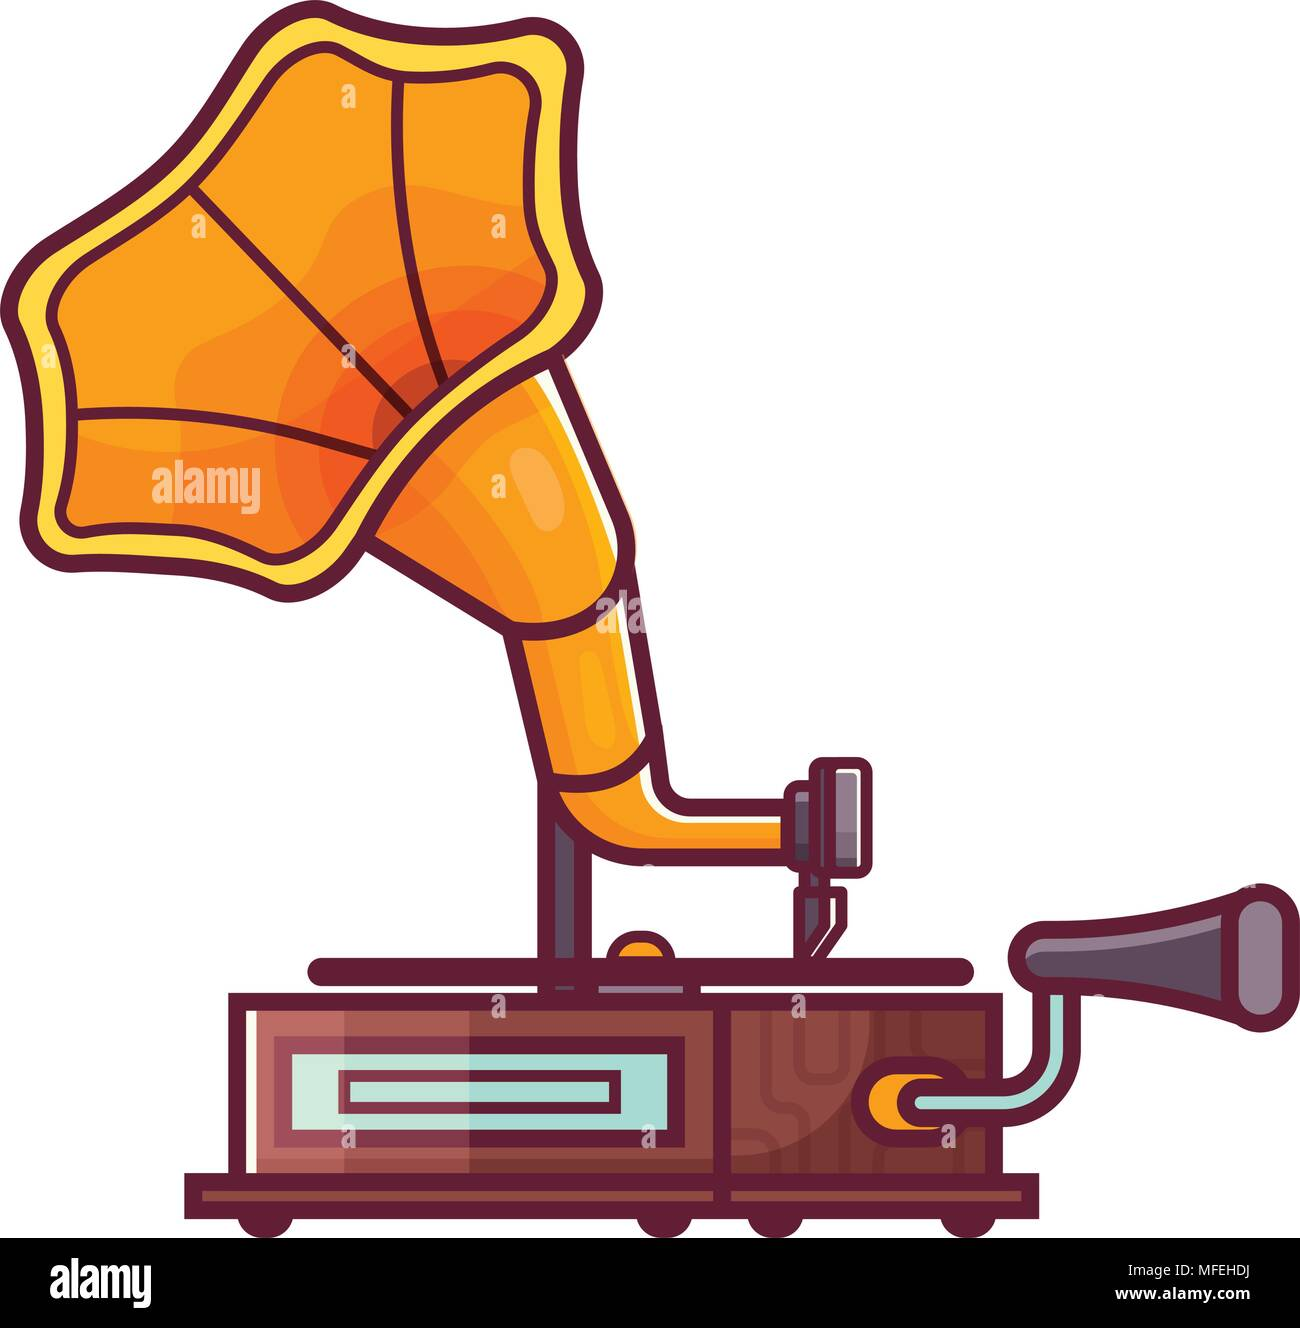 vintage horn gramophone icon stock vector image art alamy https www alamy com vintage horn gramophone icon image181644558 html